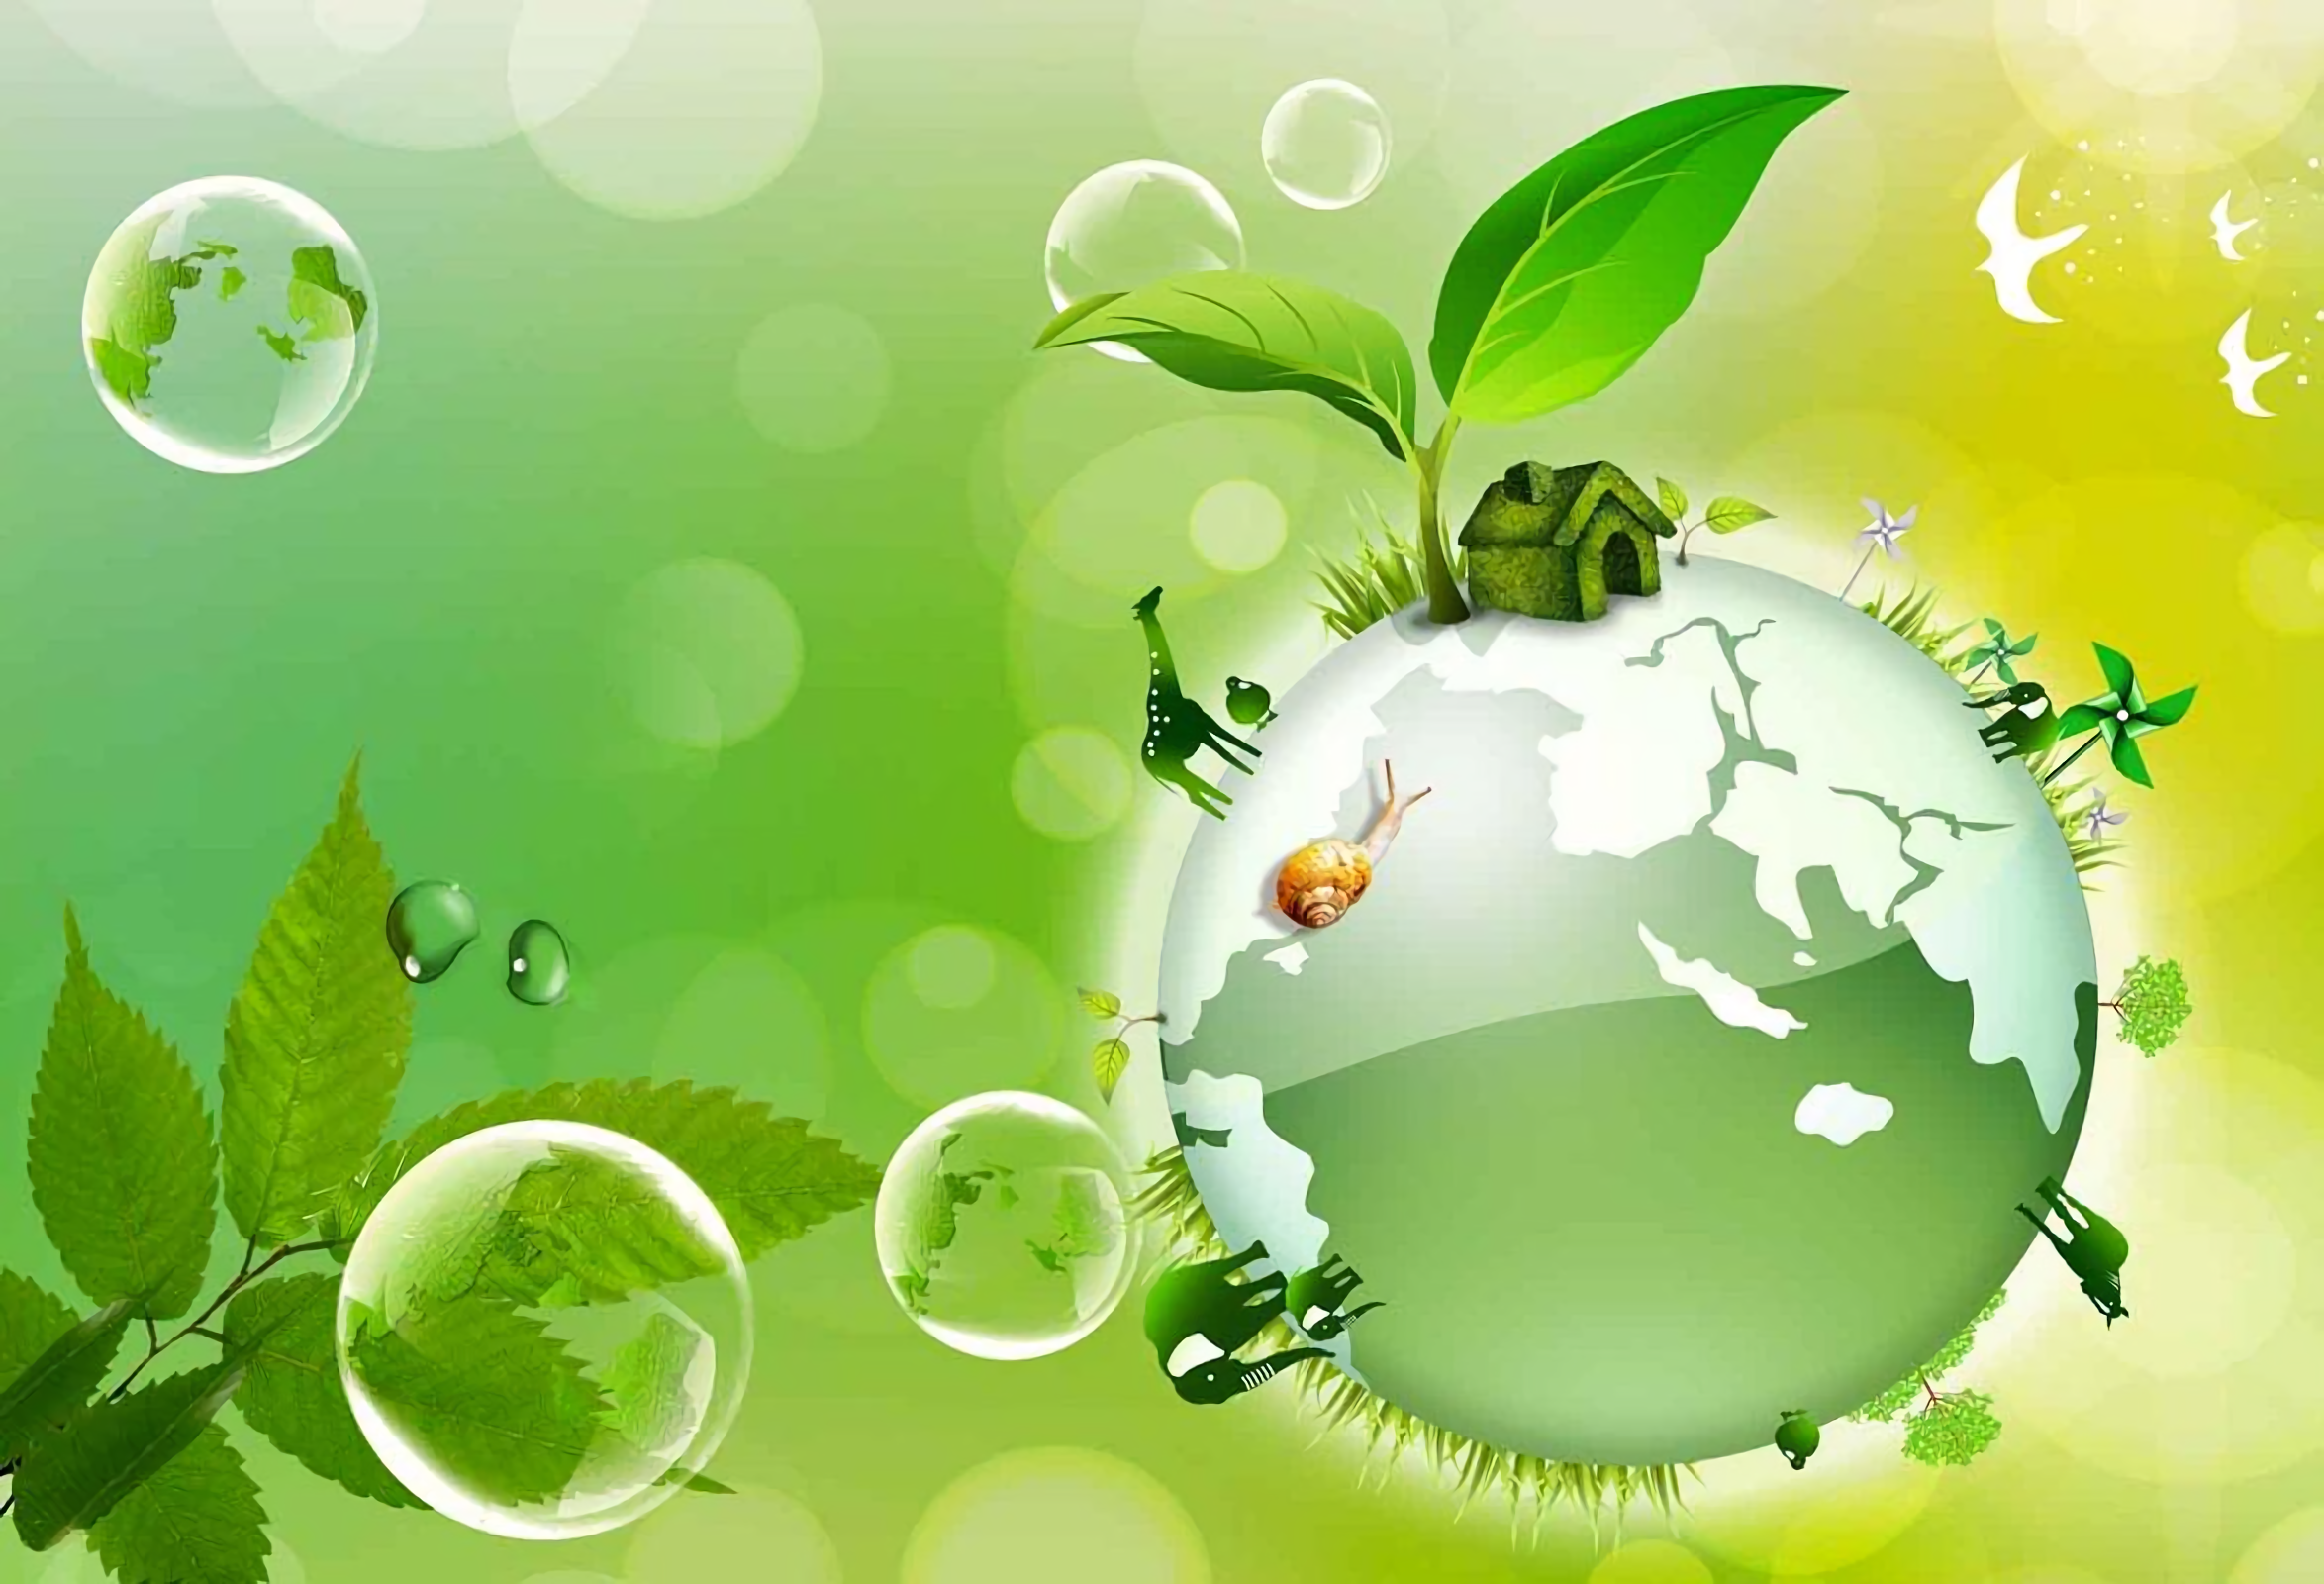 Earth Day Wallpapers and Background Images   stmednet 2348x1600